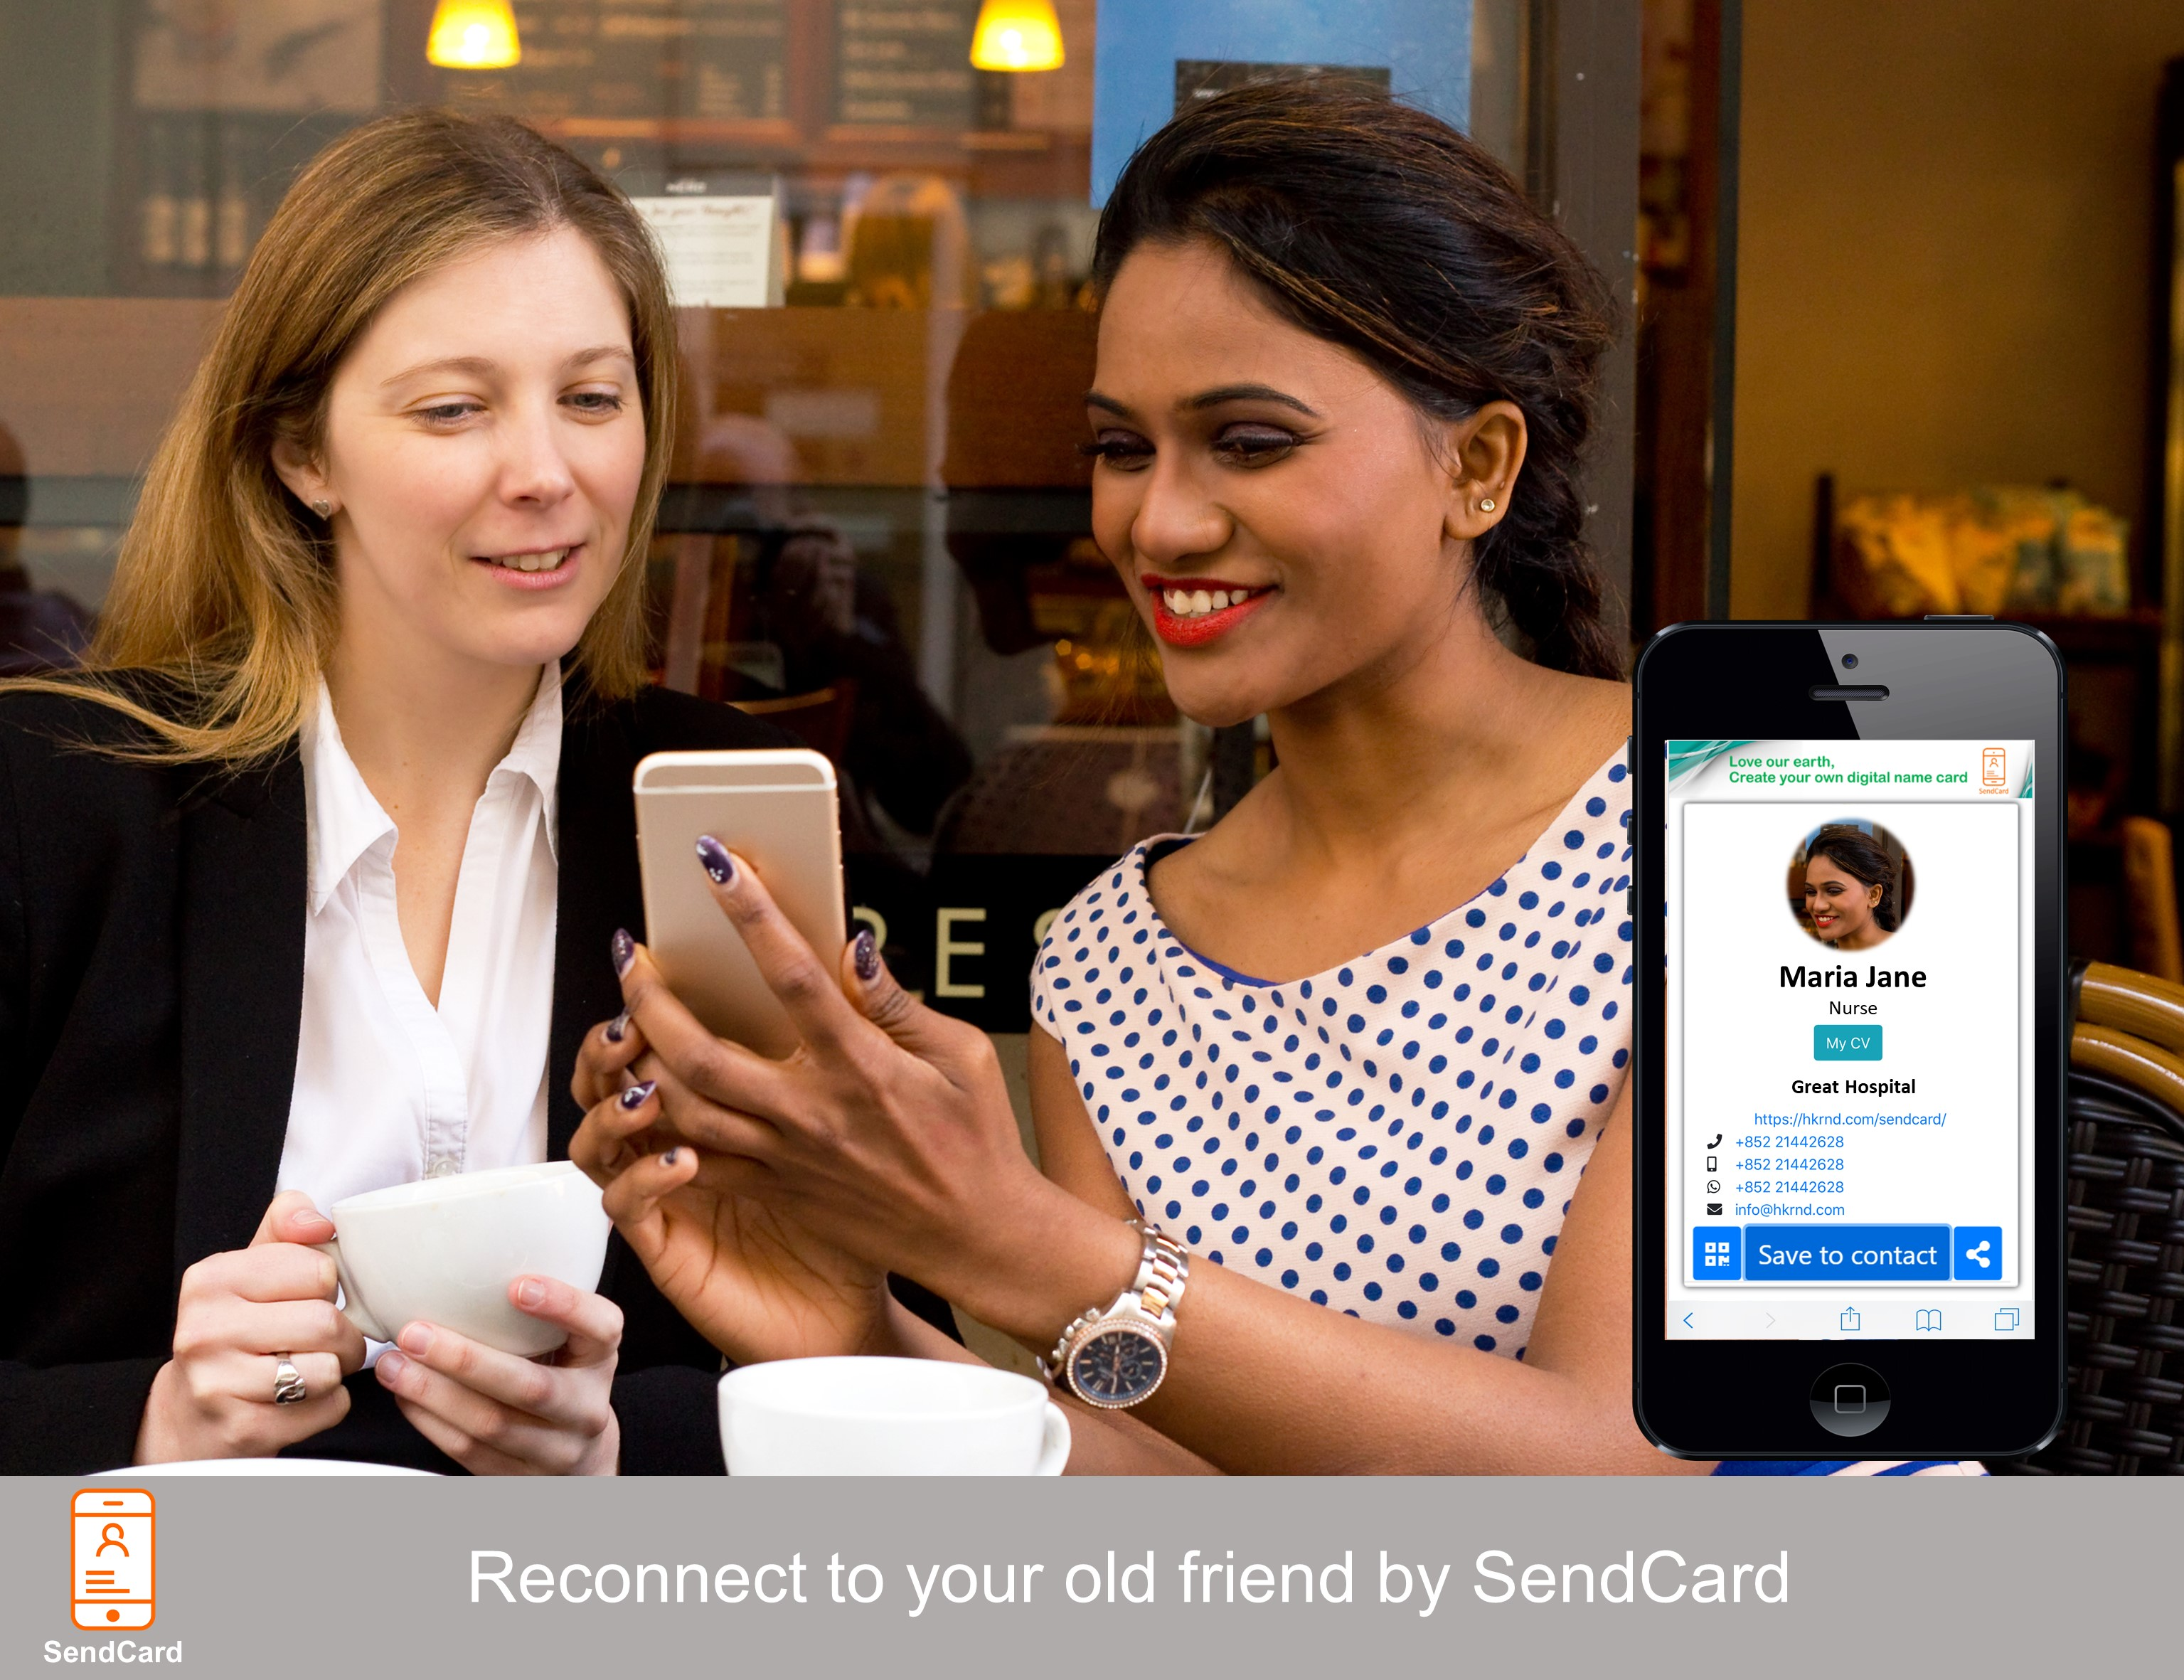 A girl showing her Sendcard to another one